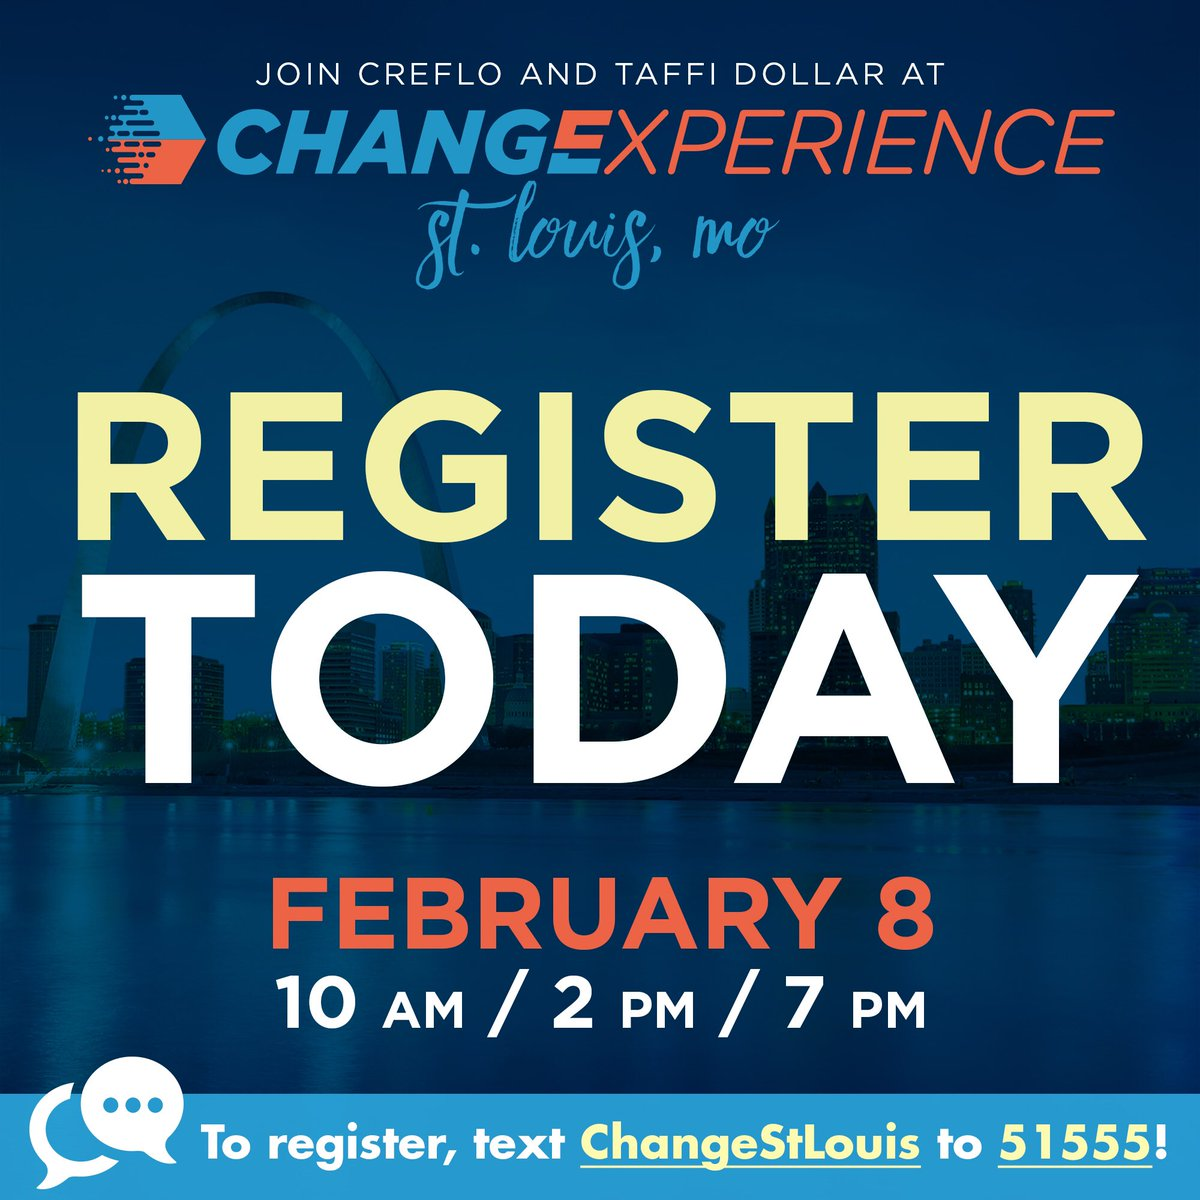 Believe what you've heard! Change Experience 2019 will be on February 8, in St Louis. Don't miss out! Click here to register …https://changeexperience2019stlouis.eventbrite.com  #ChangeExperience2019 #WorldChangers #WorldChangersChurchInternational